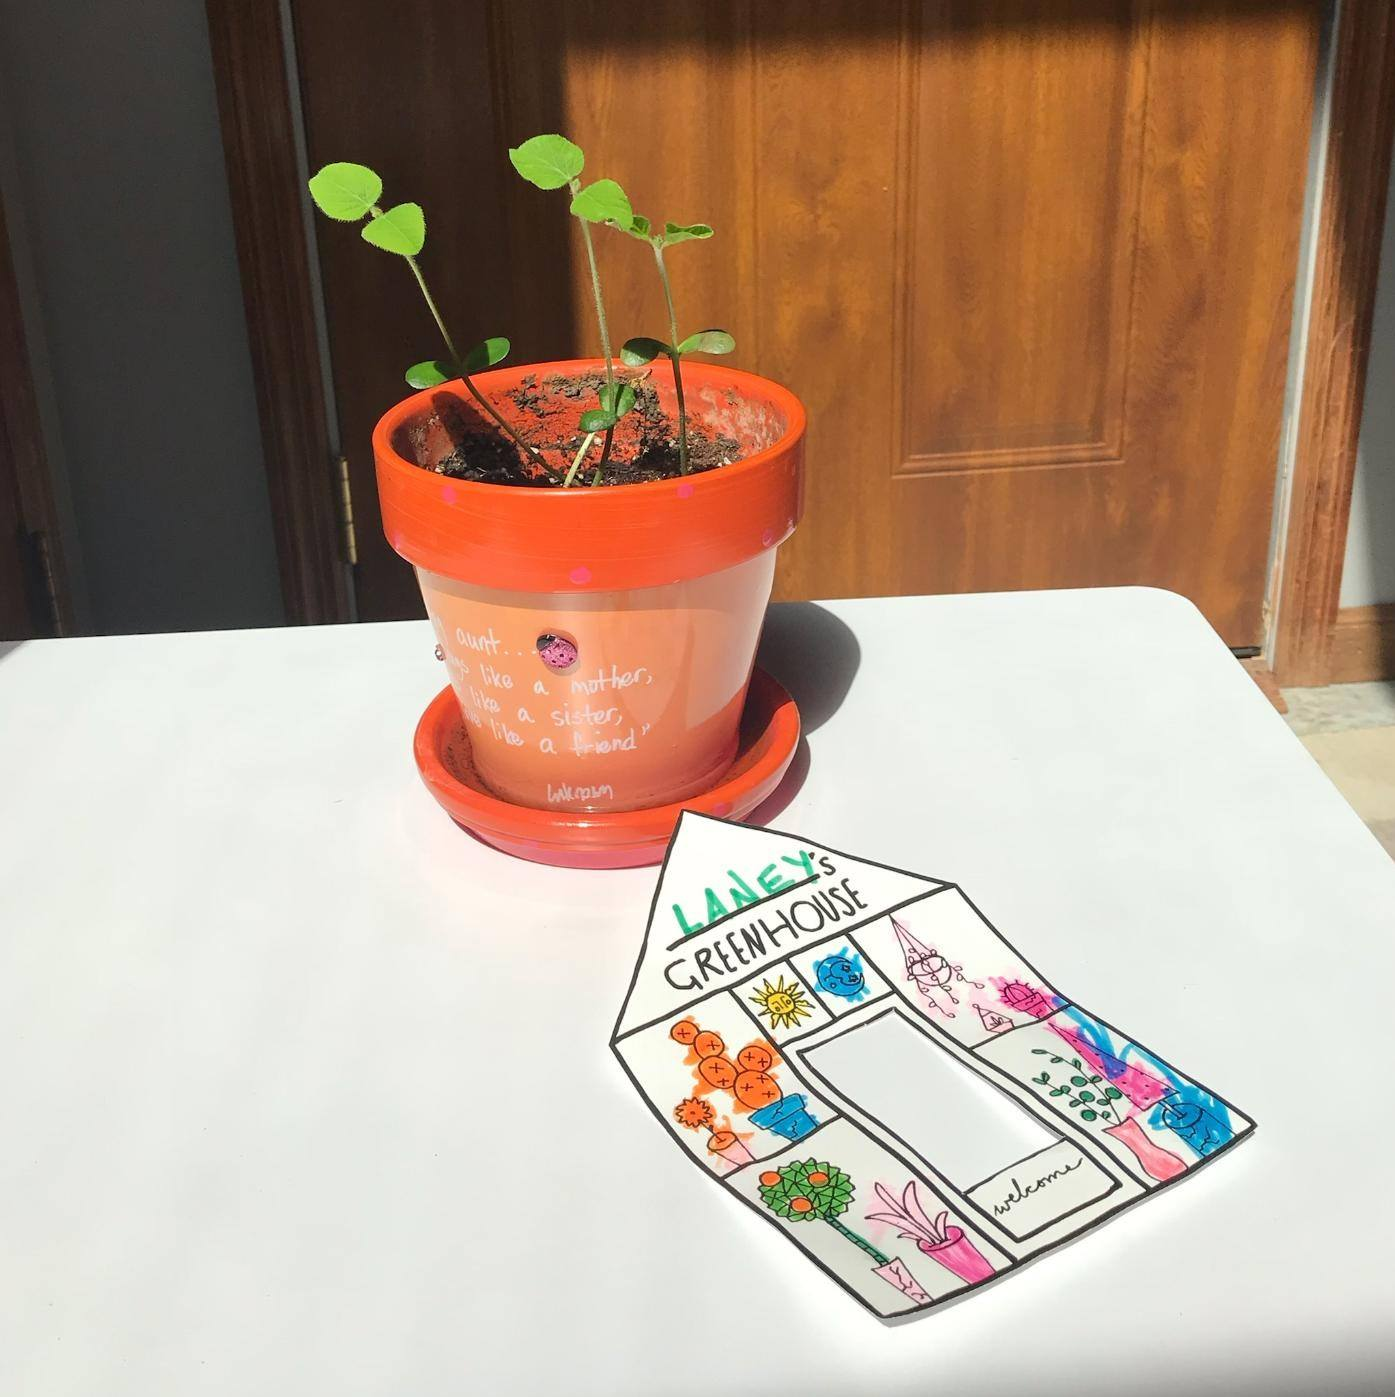 How to Grow a Bean (Printable!) #greenhouse #diy #passiveprogram #library #kids #craft #freeprintable #coloringpage #germination #gardening